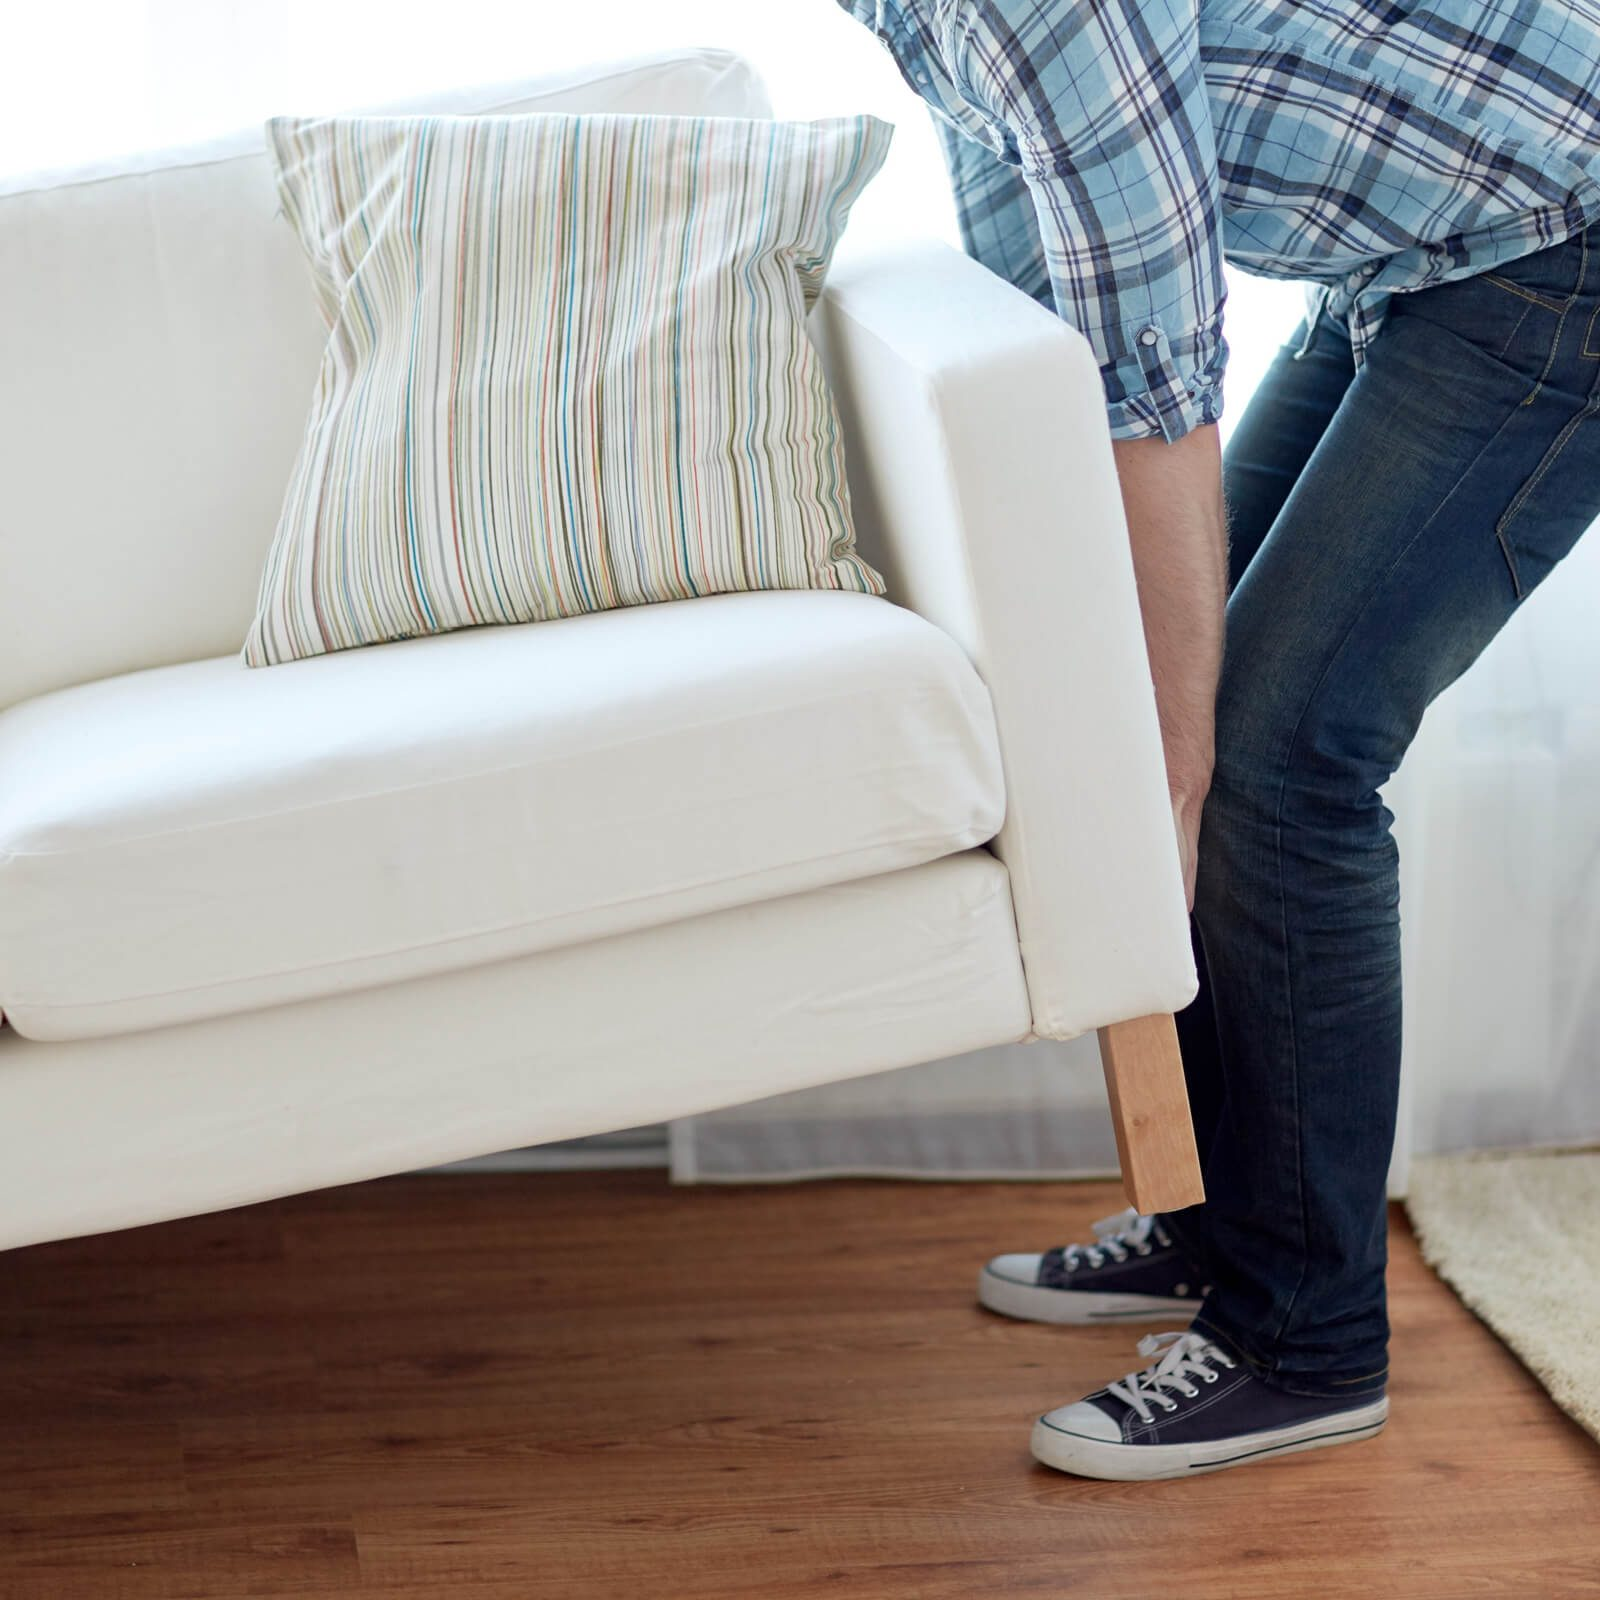 Moving furniture in The Woodlands, TX   Roberts Carpet & Fine Floors